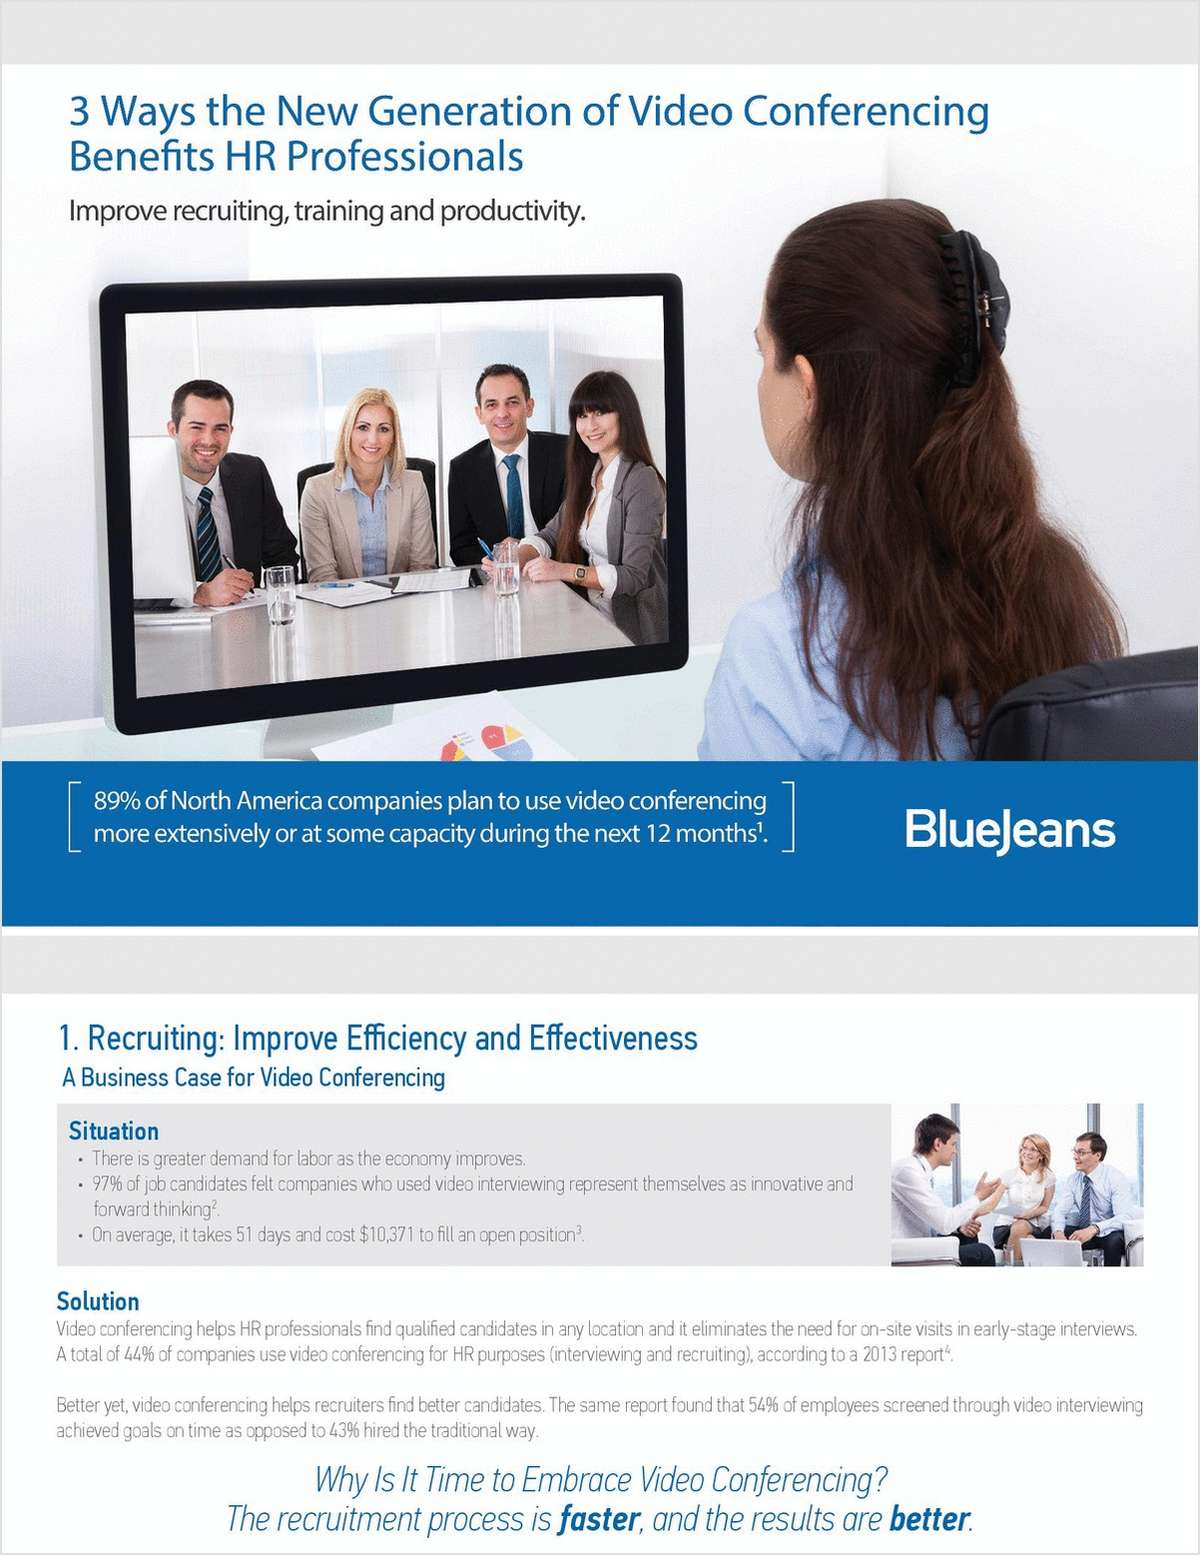 3 Ways the New Generation of Video Conferencing Benefits HR Professionals